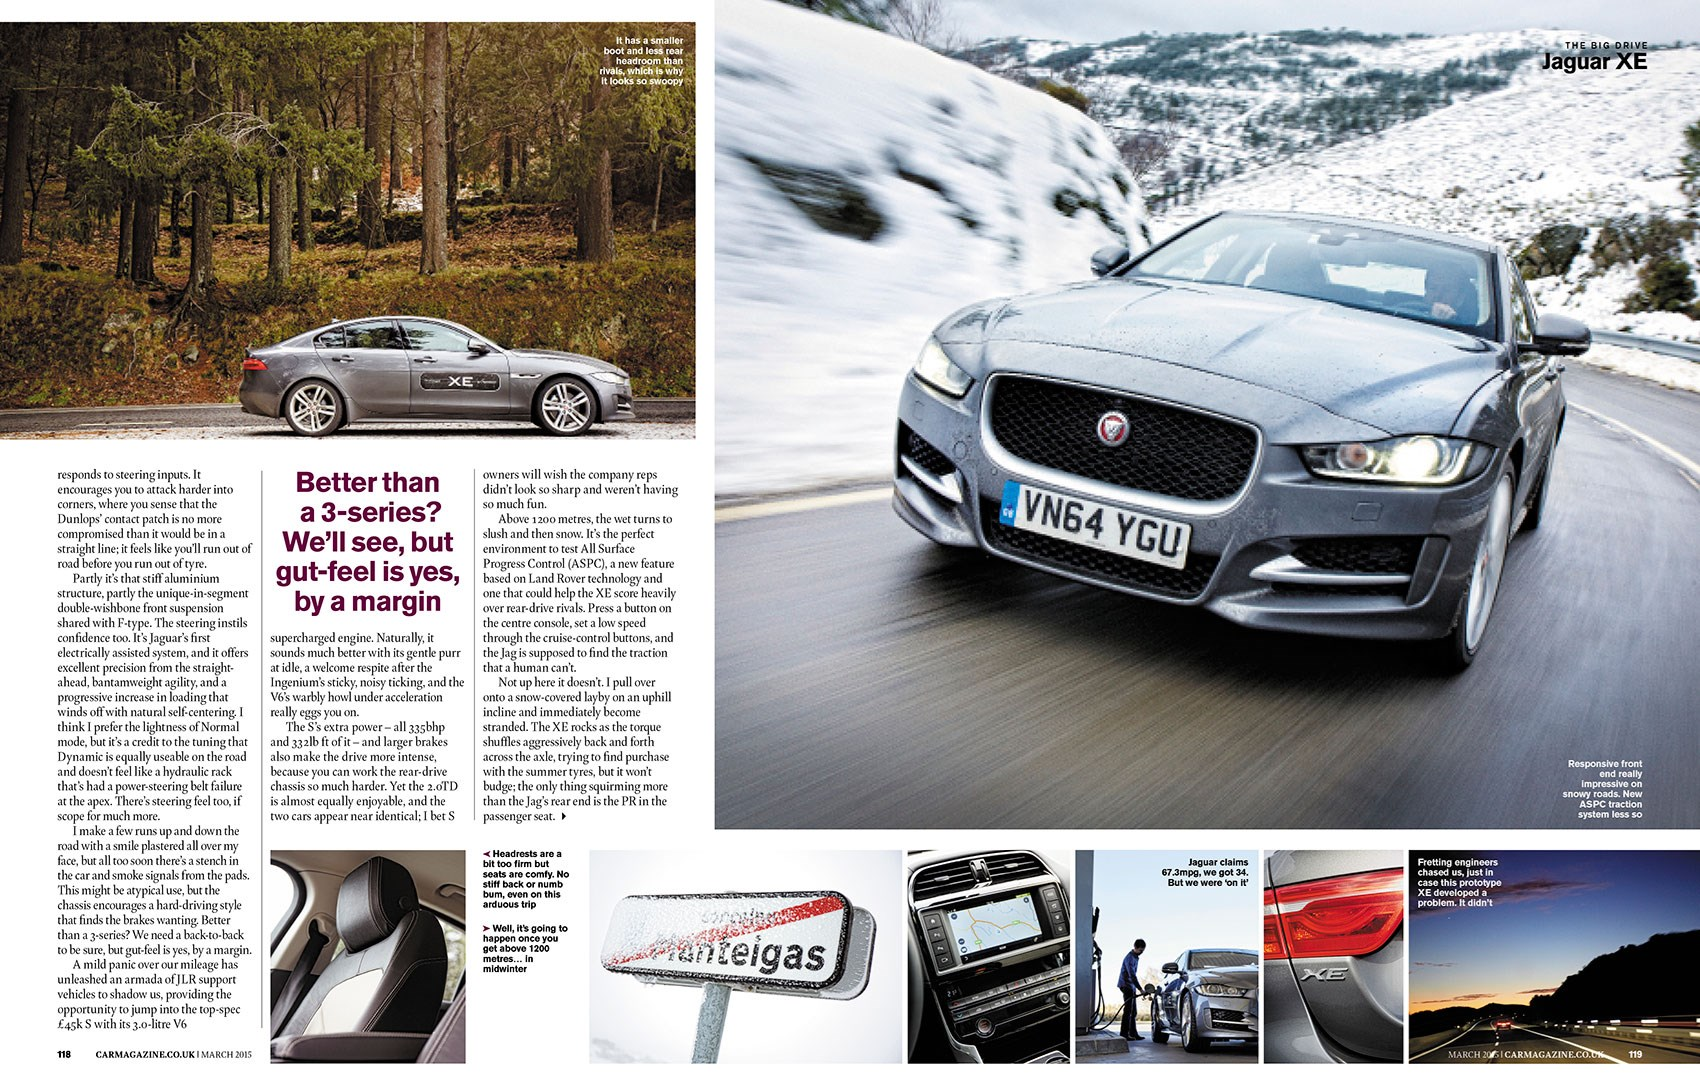 We drove an early Jaguar XE to Gibraltar in a 1351-mile adventure drive